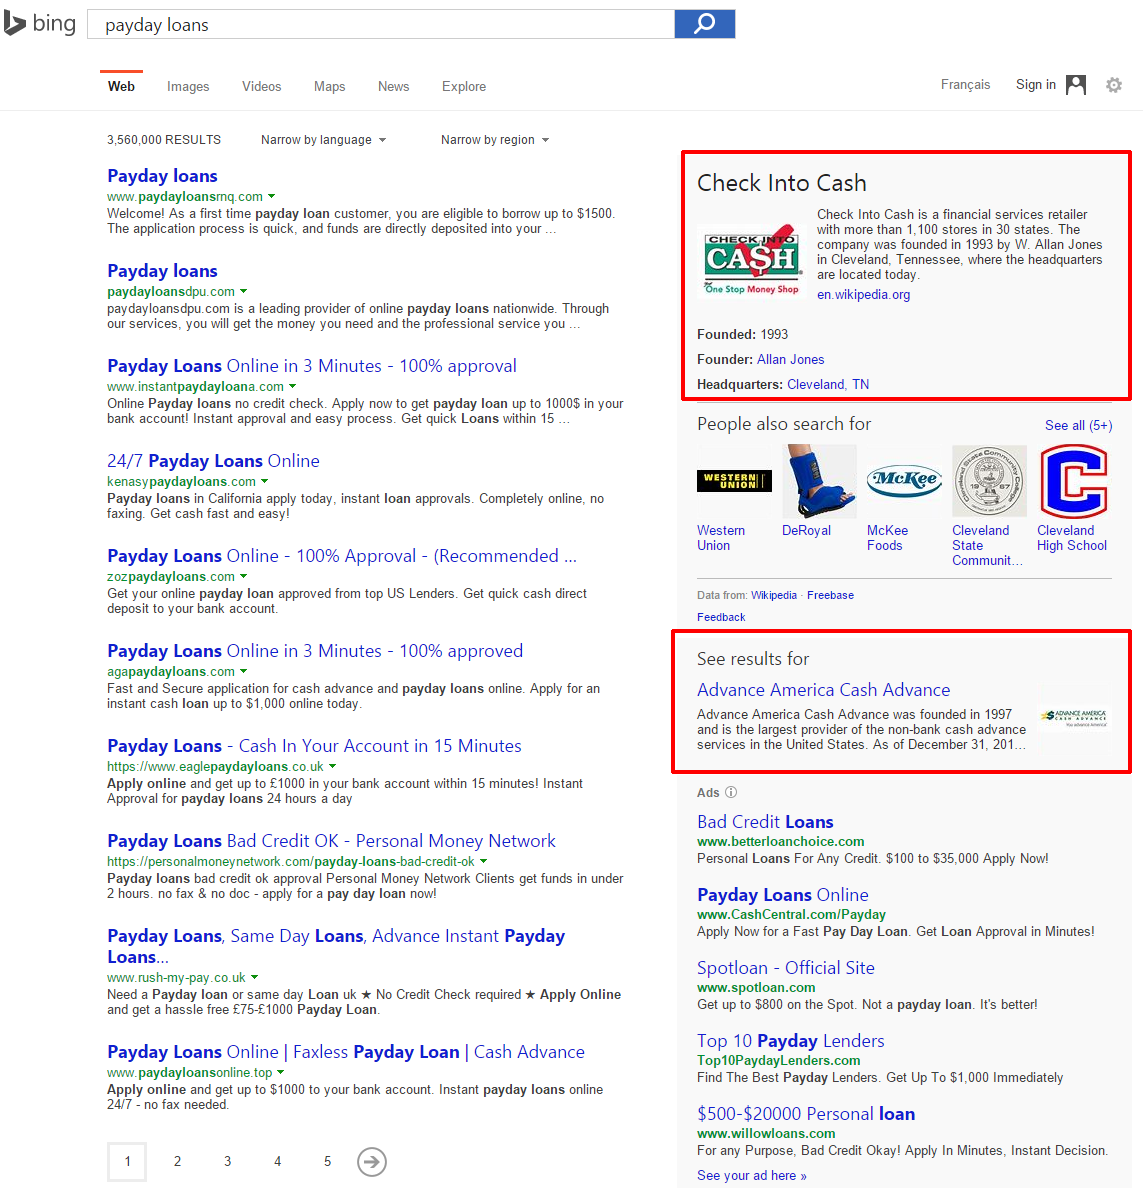 bing see results for brands b1